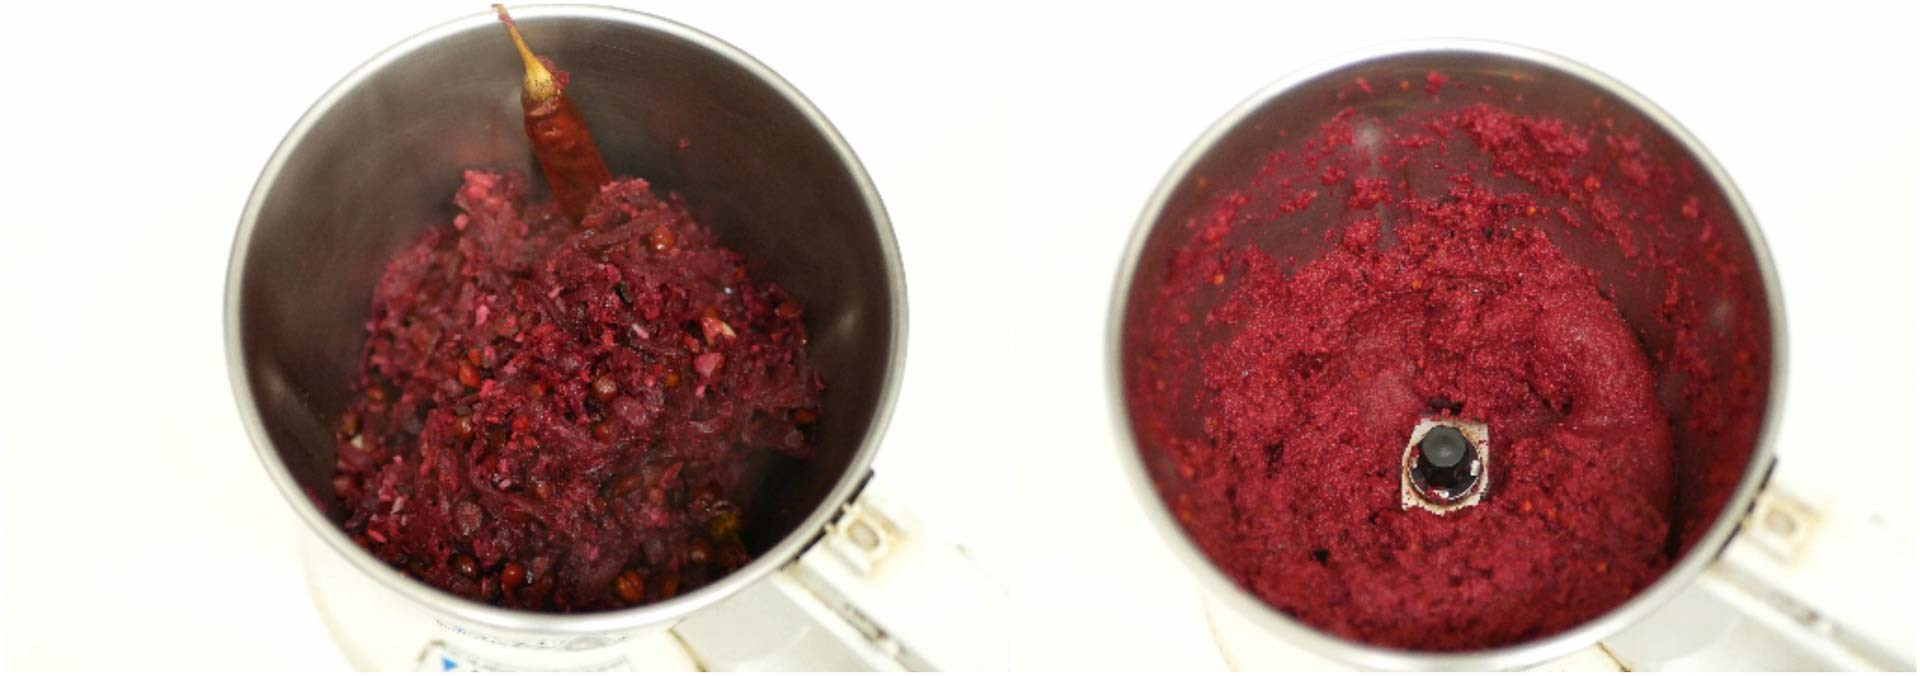 how to cook fresh beetroot recipes